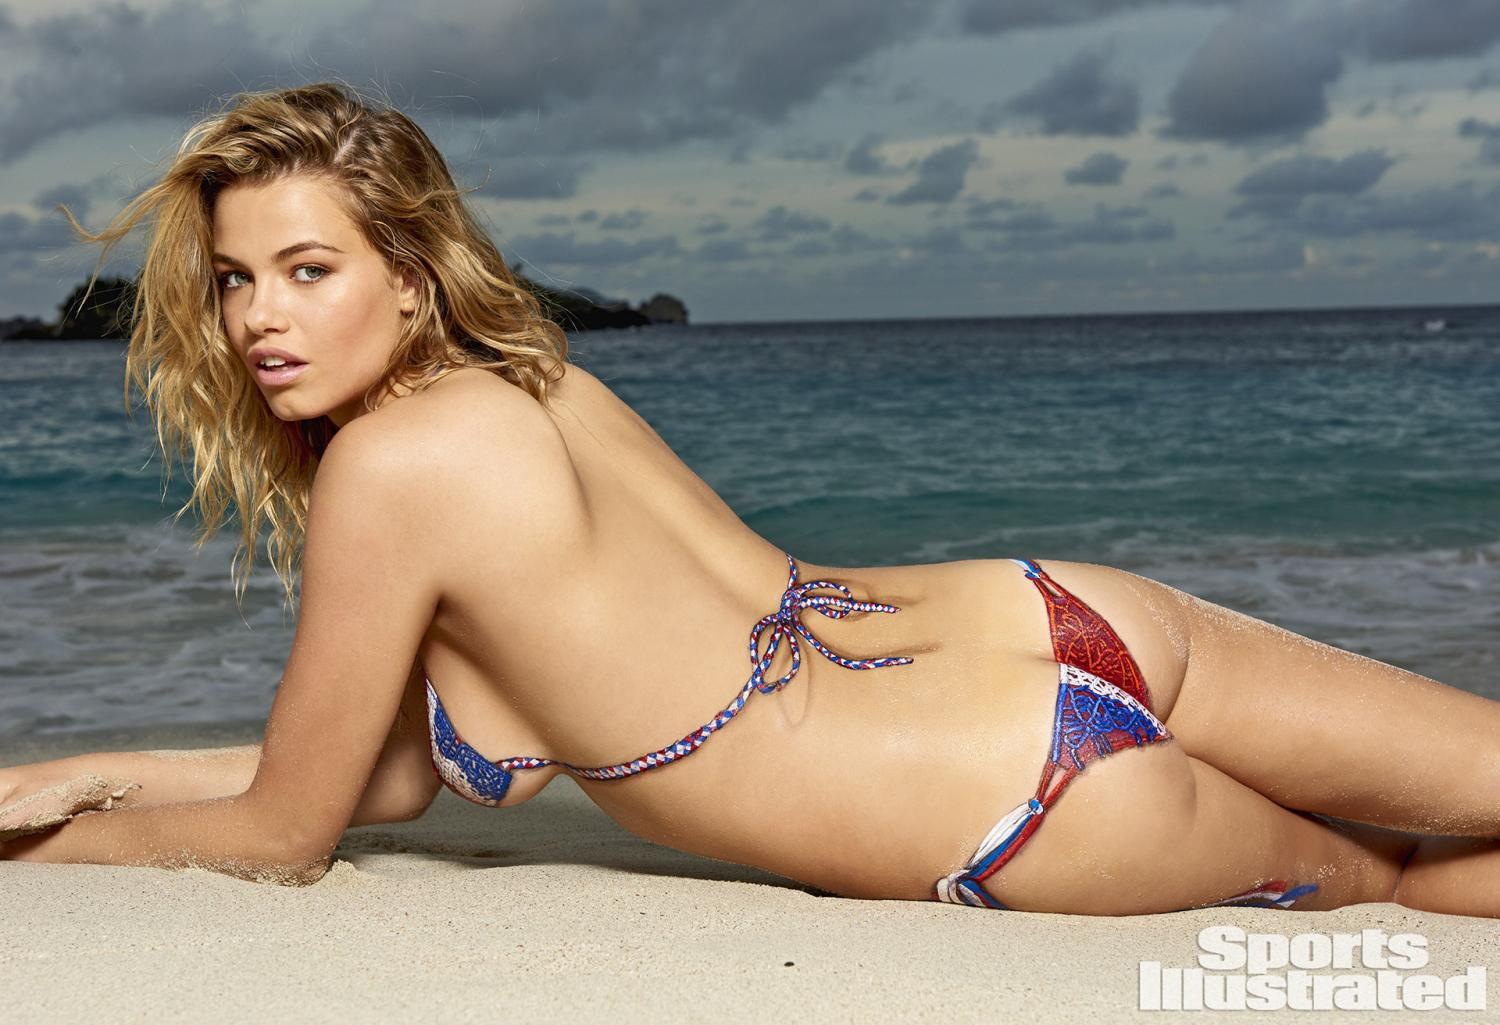 ... Clauson Swimsuit Body Paint Photos, Sports Illustrated Swimsuit 2015